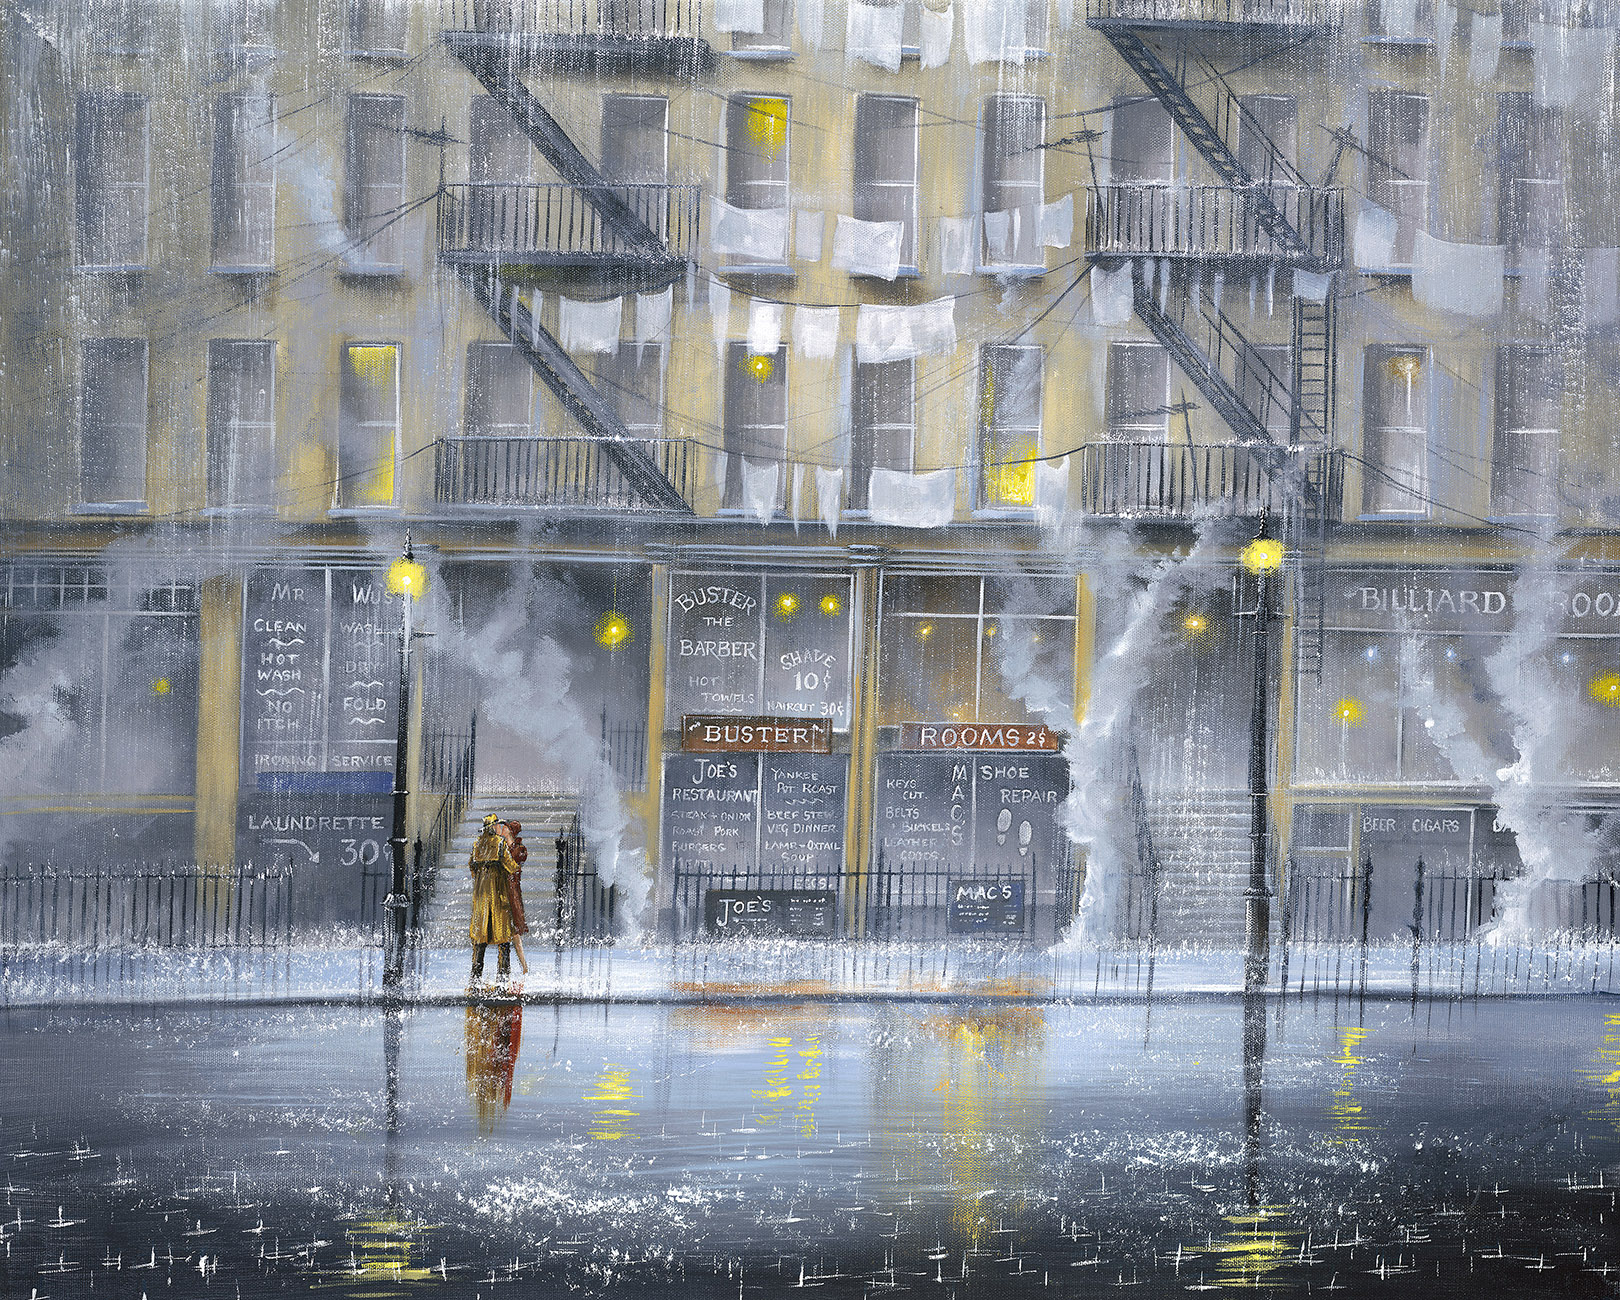 Our Meeting Place by Jeff Rowland